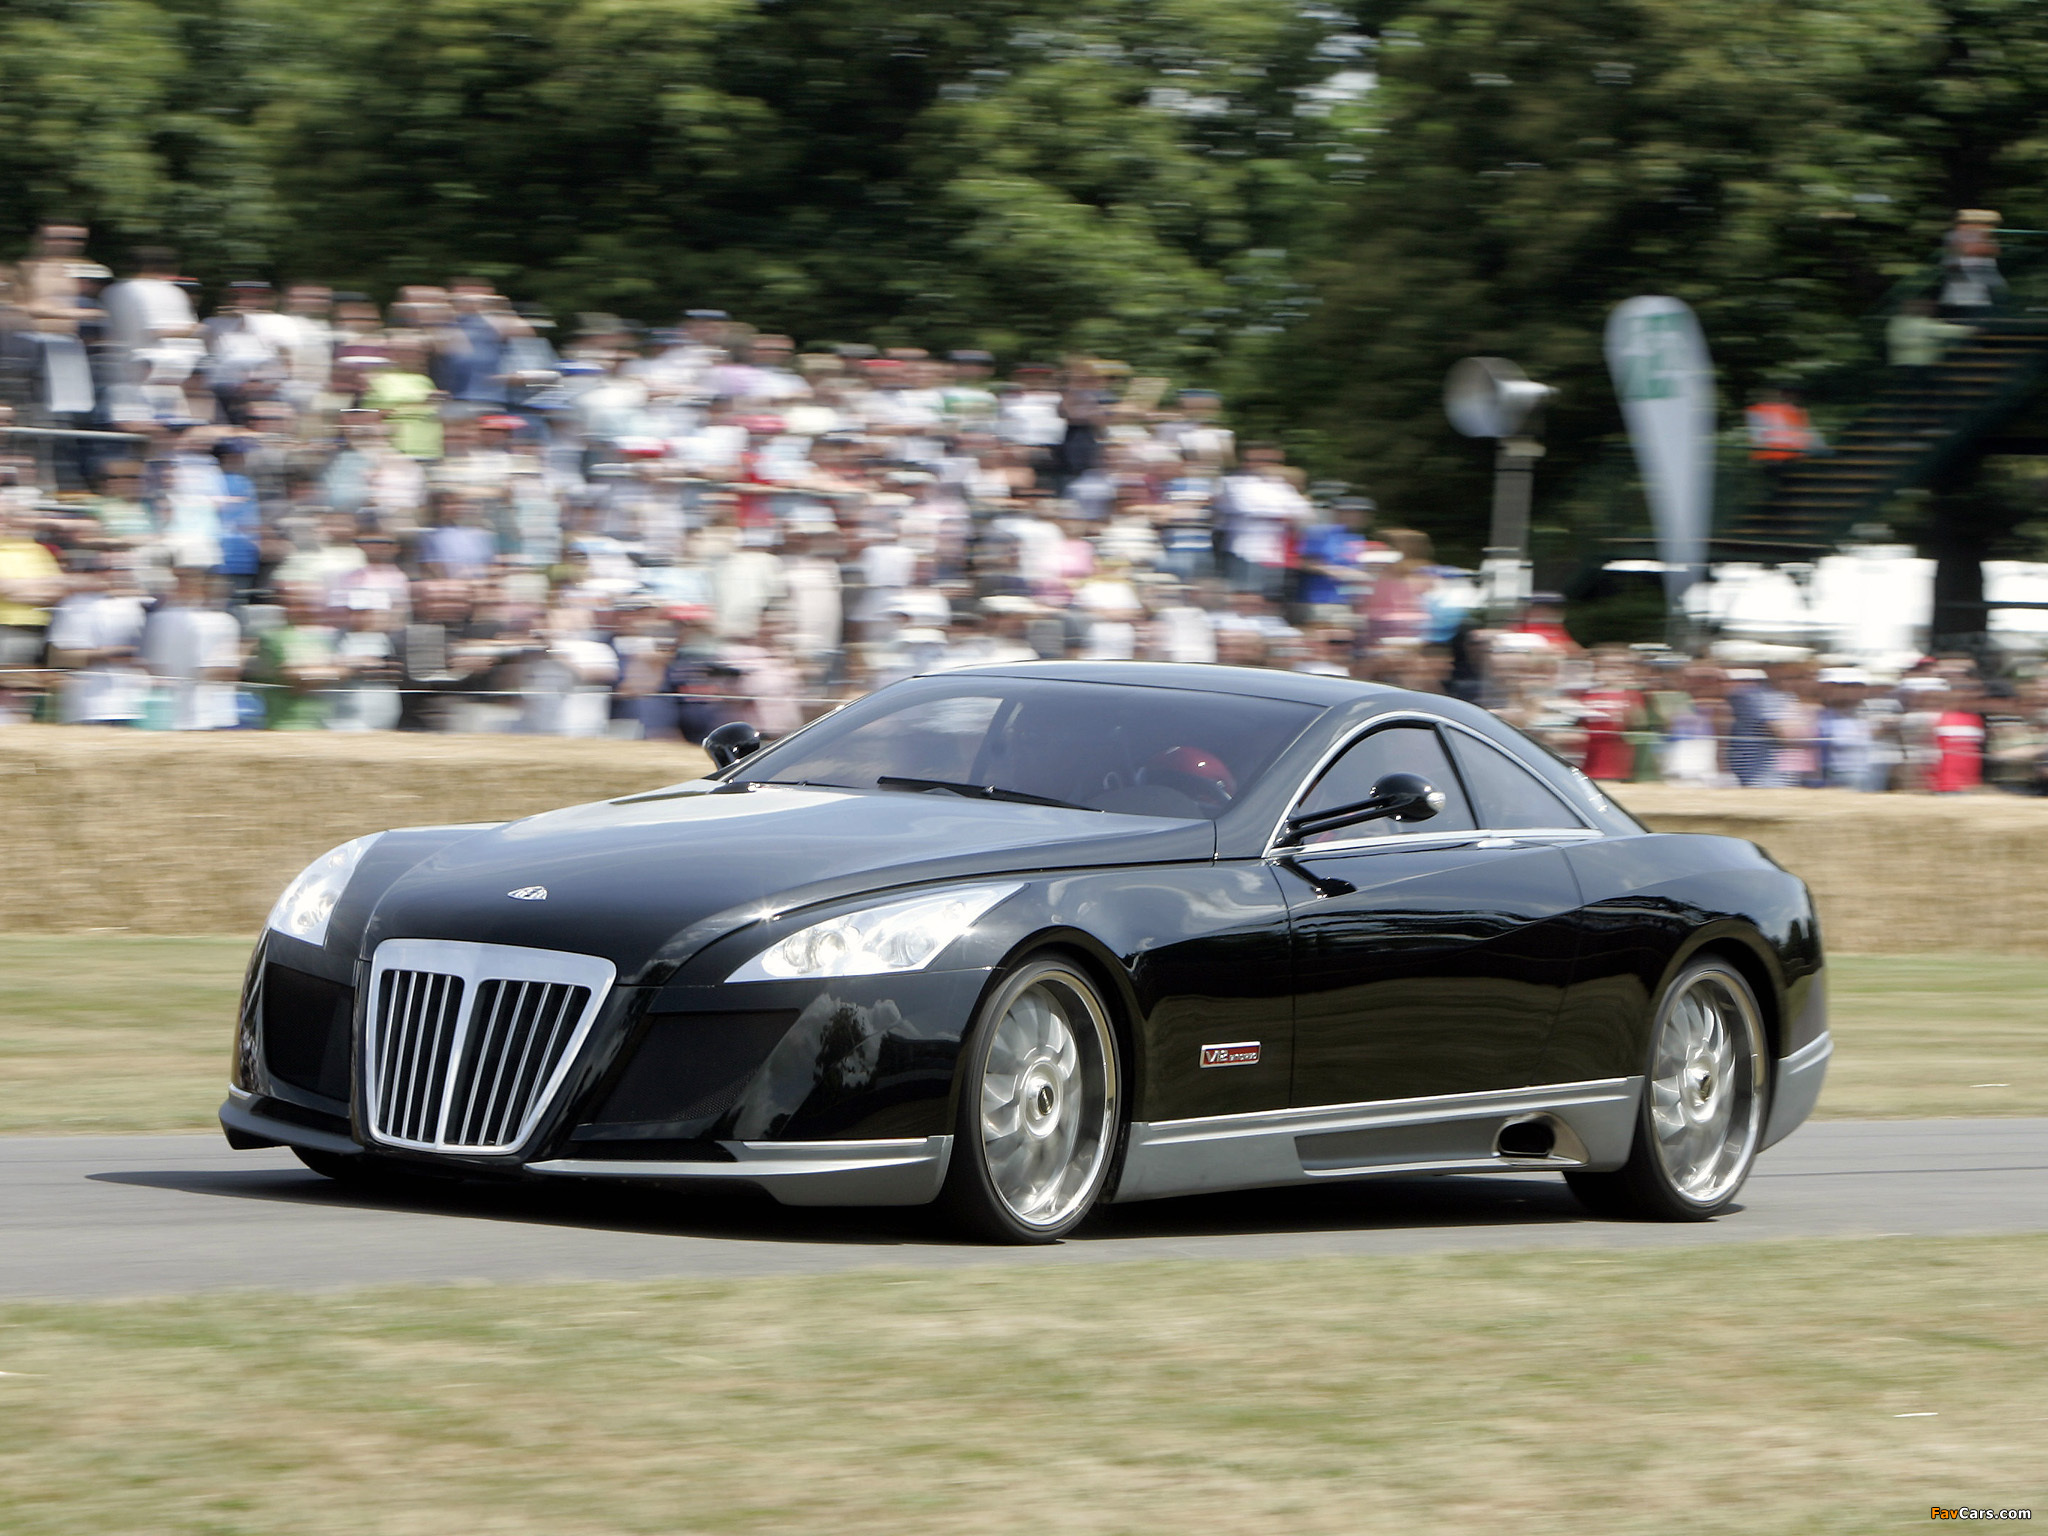 Wallpapers 1024x768 Cars Maybach Exelero Concept 2005 Wallpapers 2048x1536